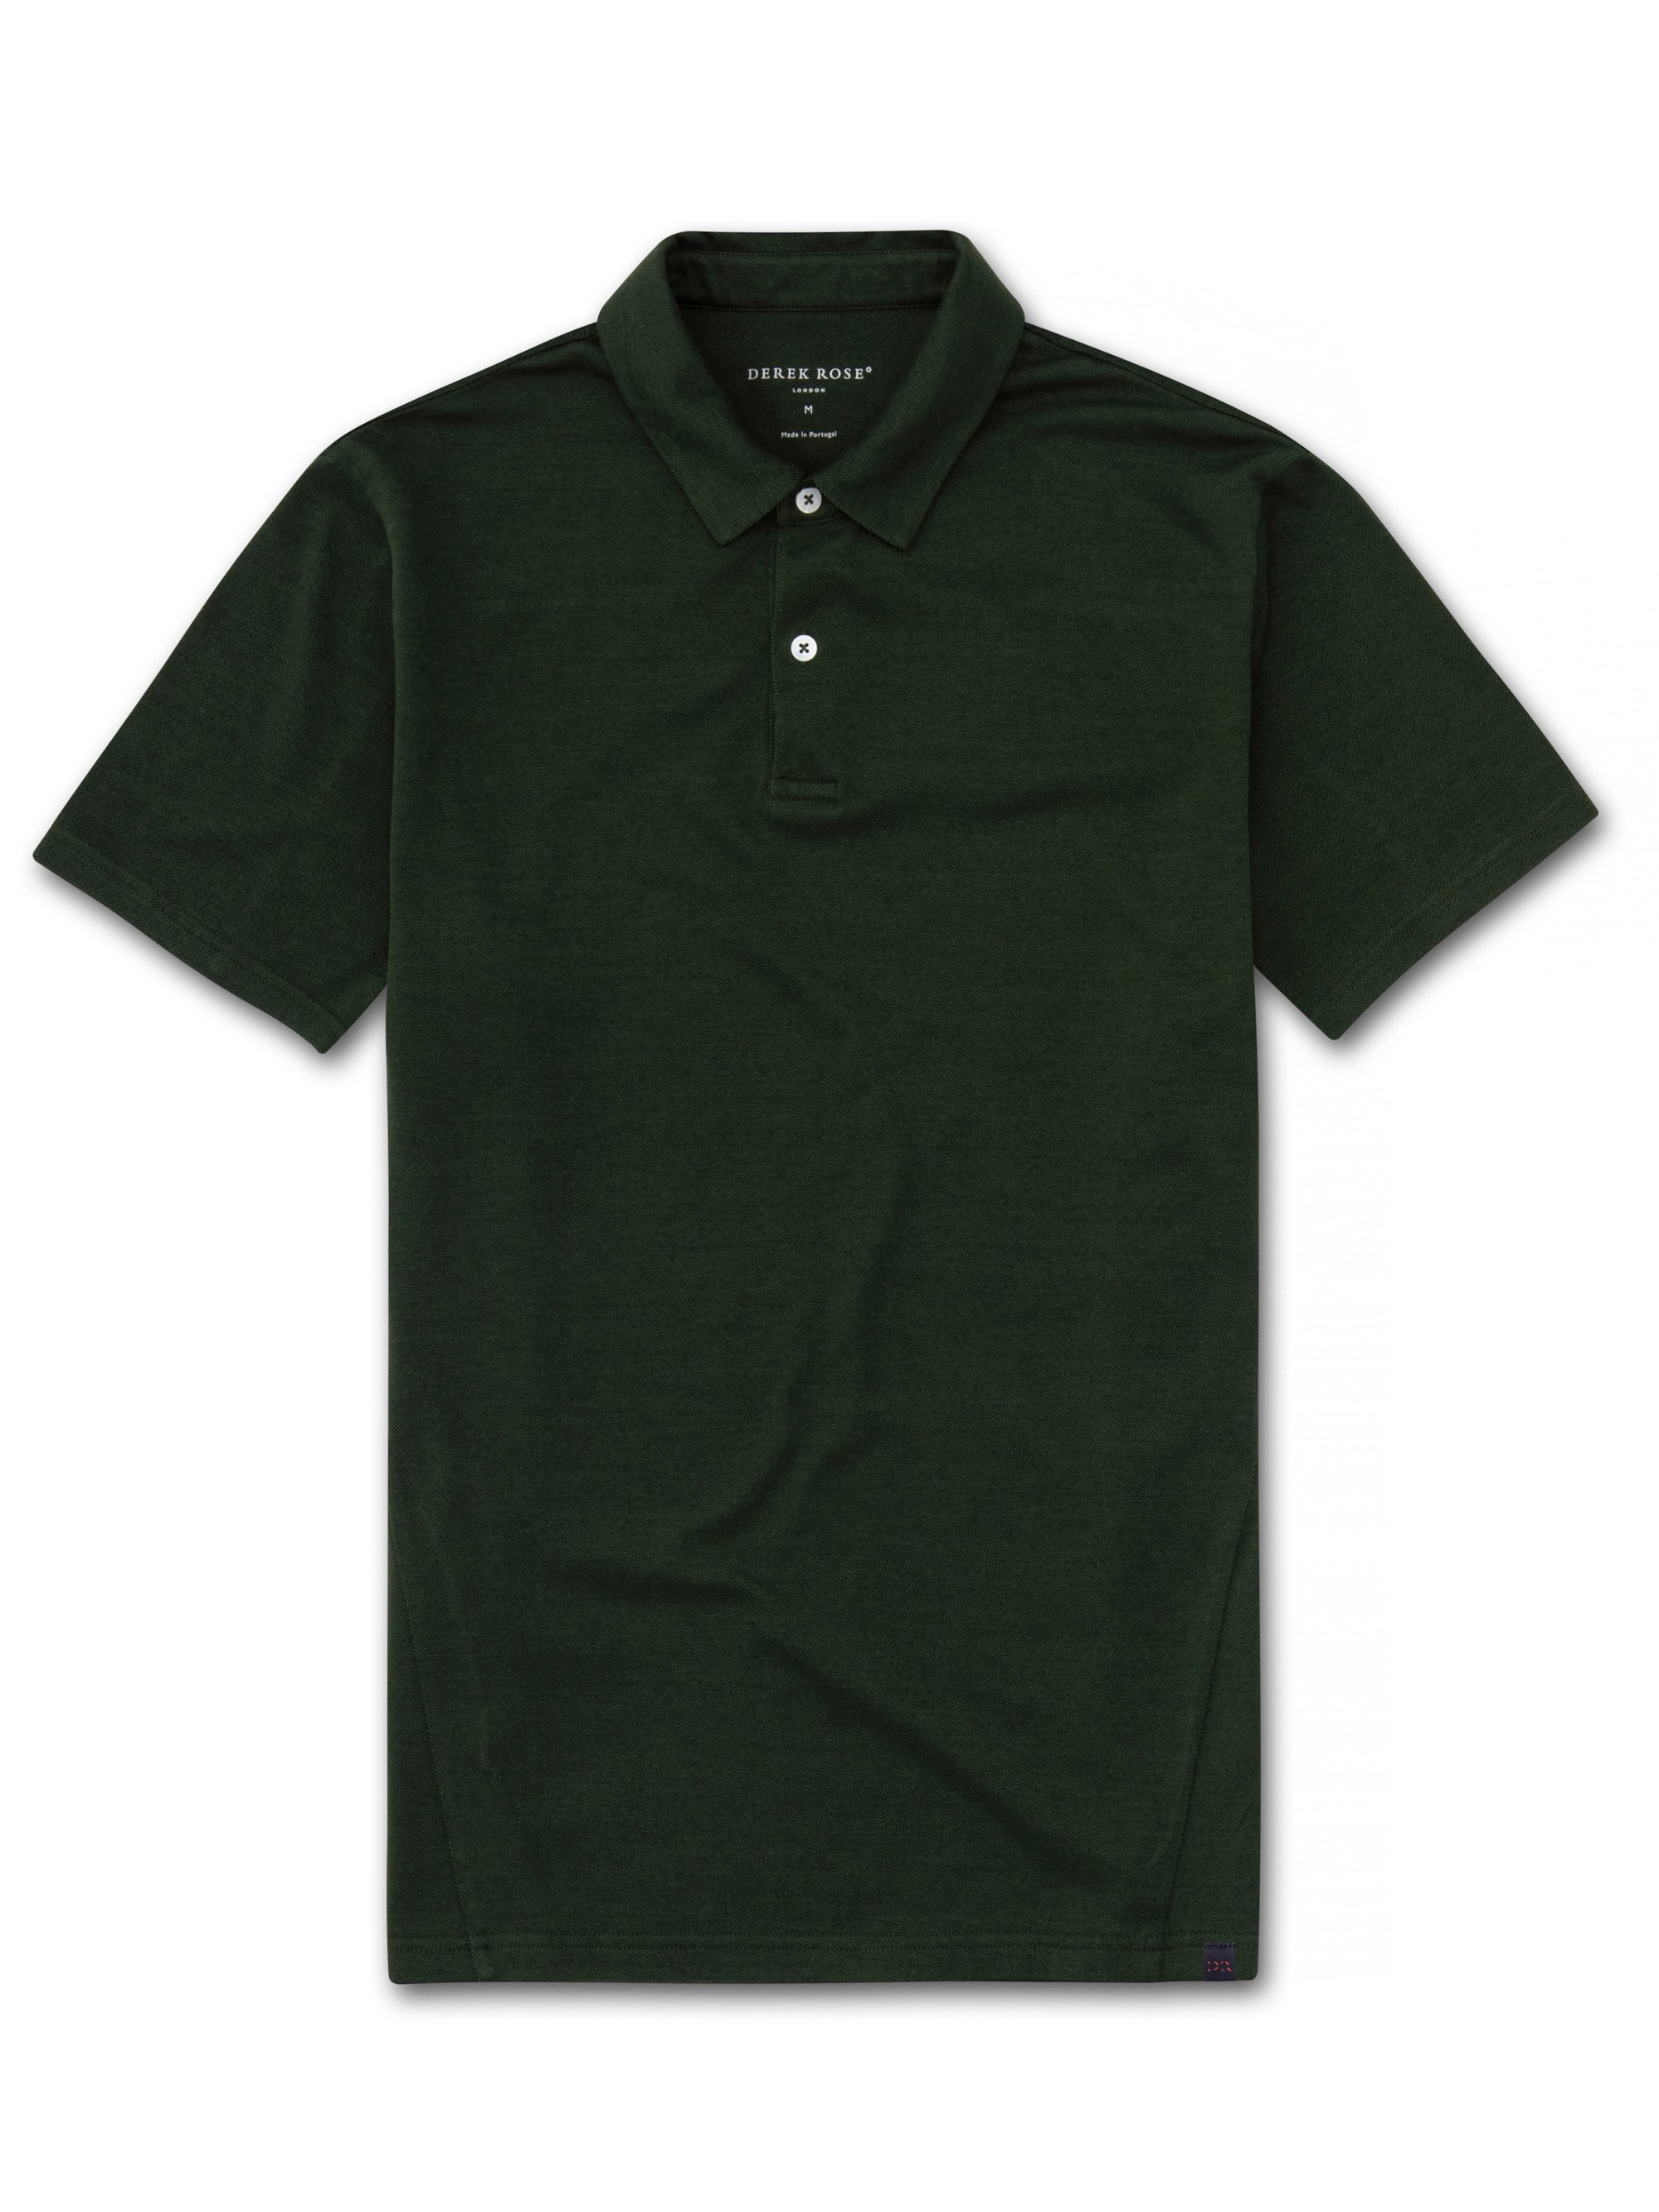 Men's Short Sleeve Polo Shirt Ramsay Pique Cotton Tencel Green